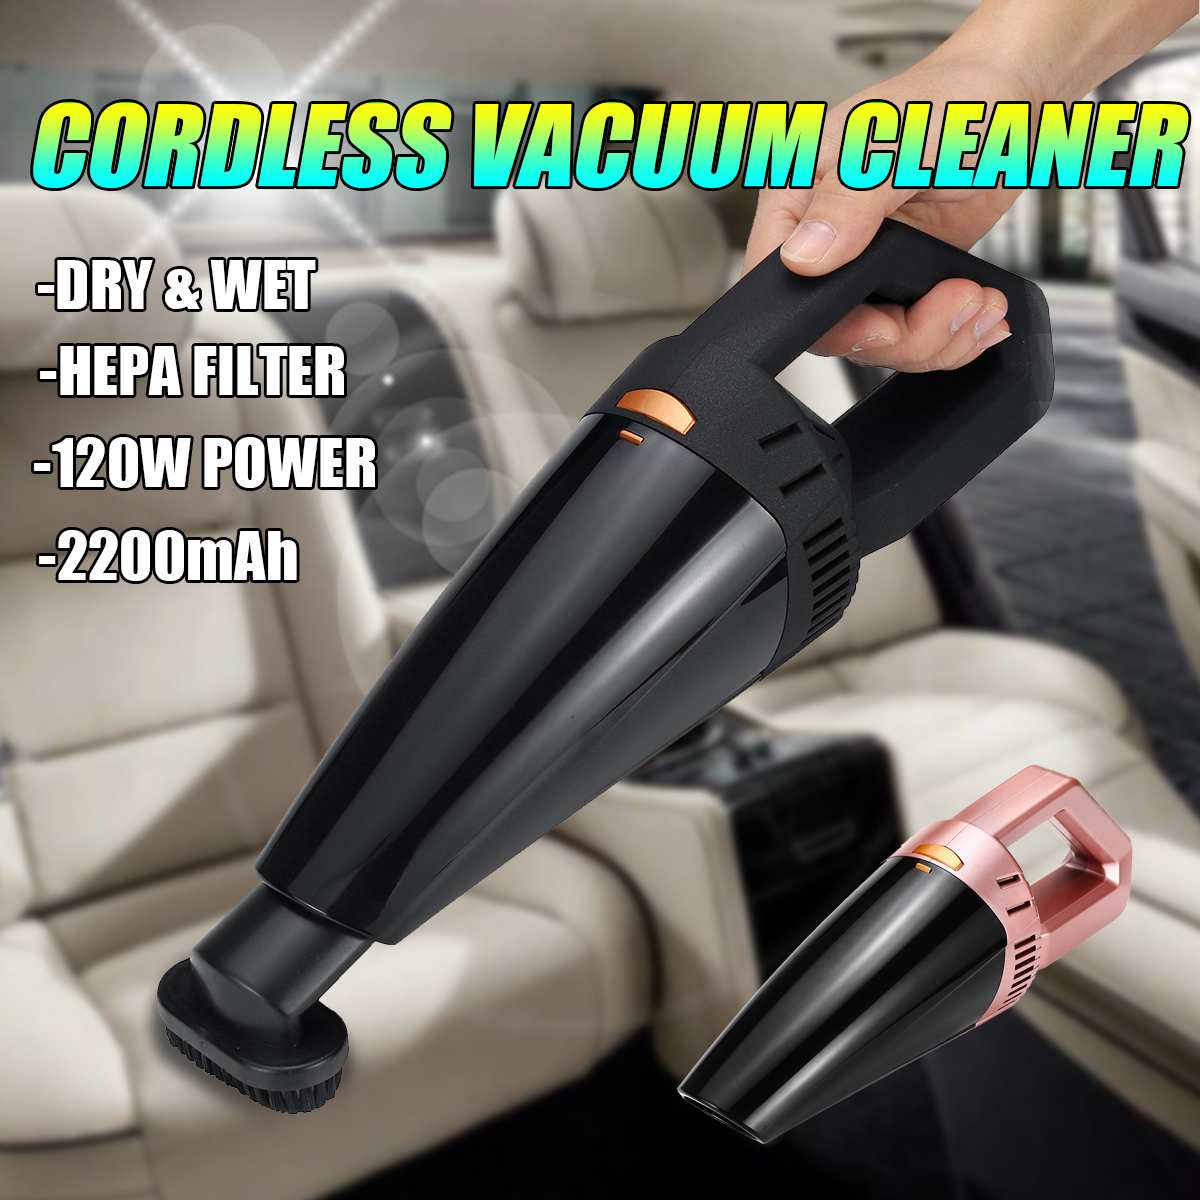 12V Rechargeable Cordless Wireless Handheld Car Vacuum Cleaner Mini Portable Wet Dry Dust Buster For Car House Cleaning